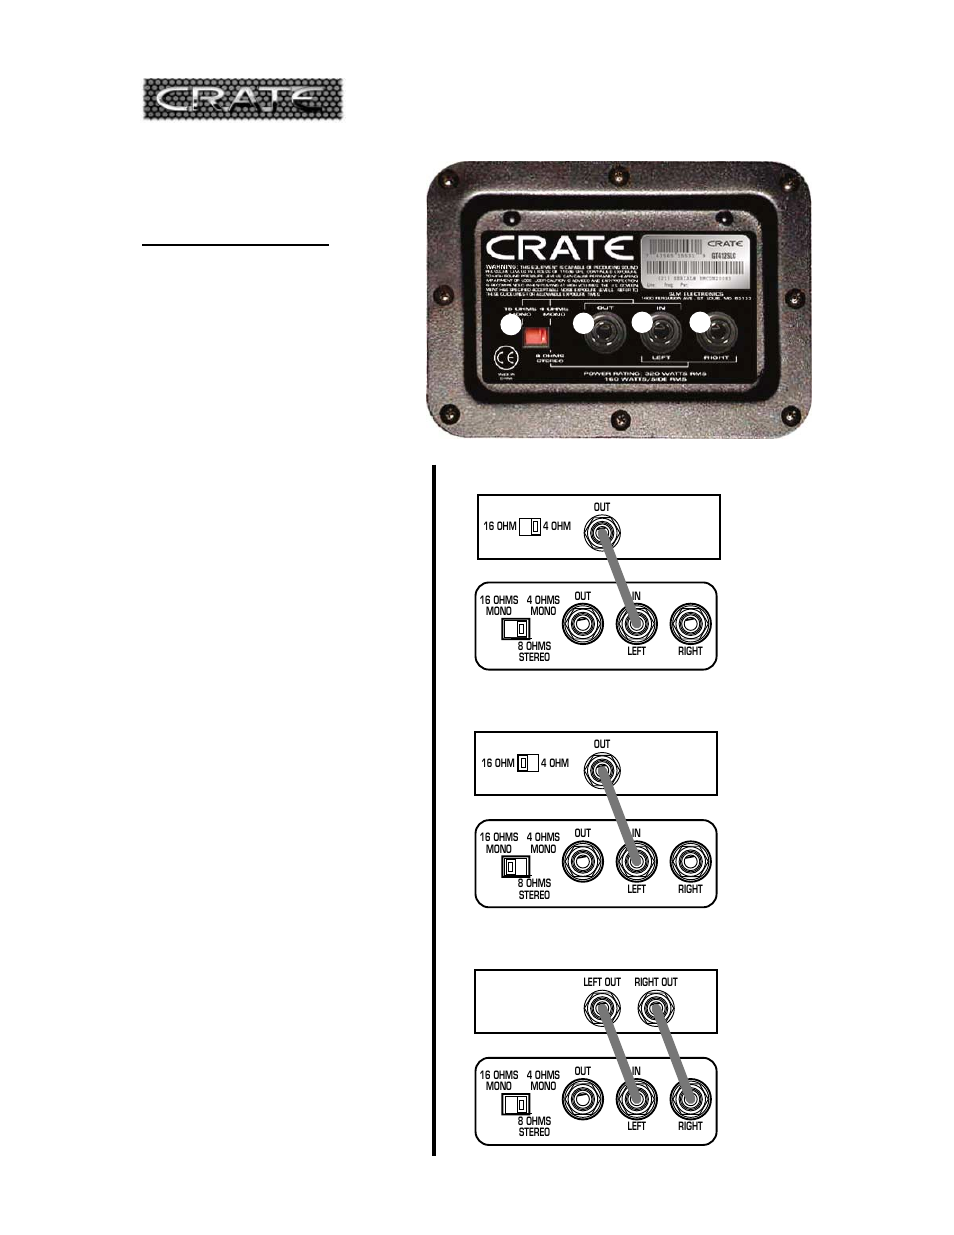 Gt412sl St Guitar Enclosure Crate Amplifiers Gt412st User Manual Cabinet Jack Wiring Page 3